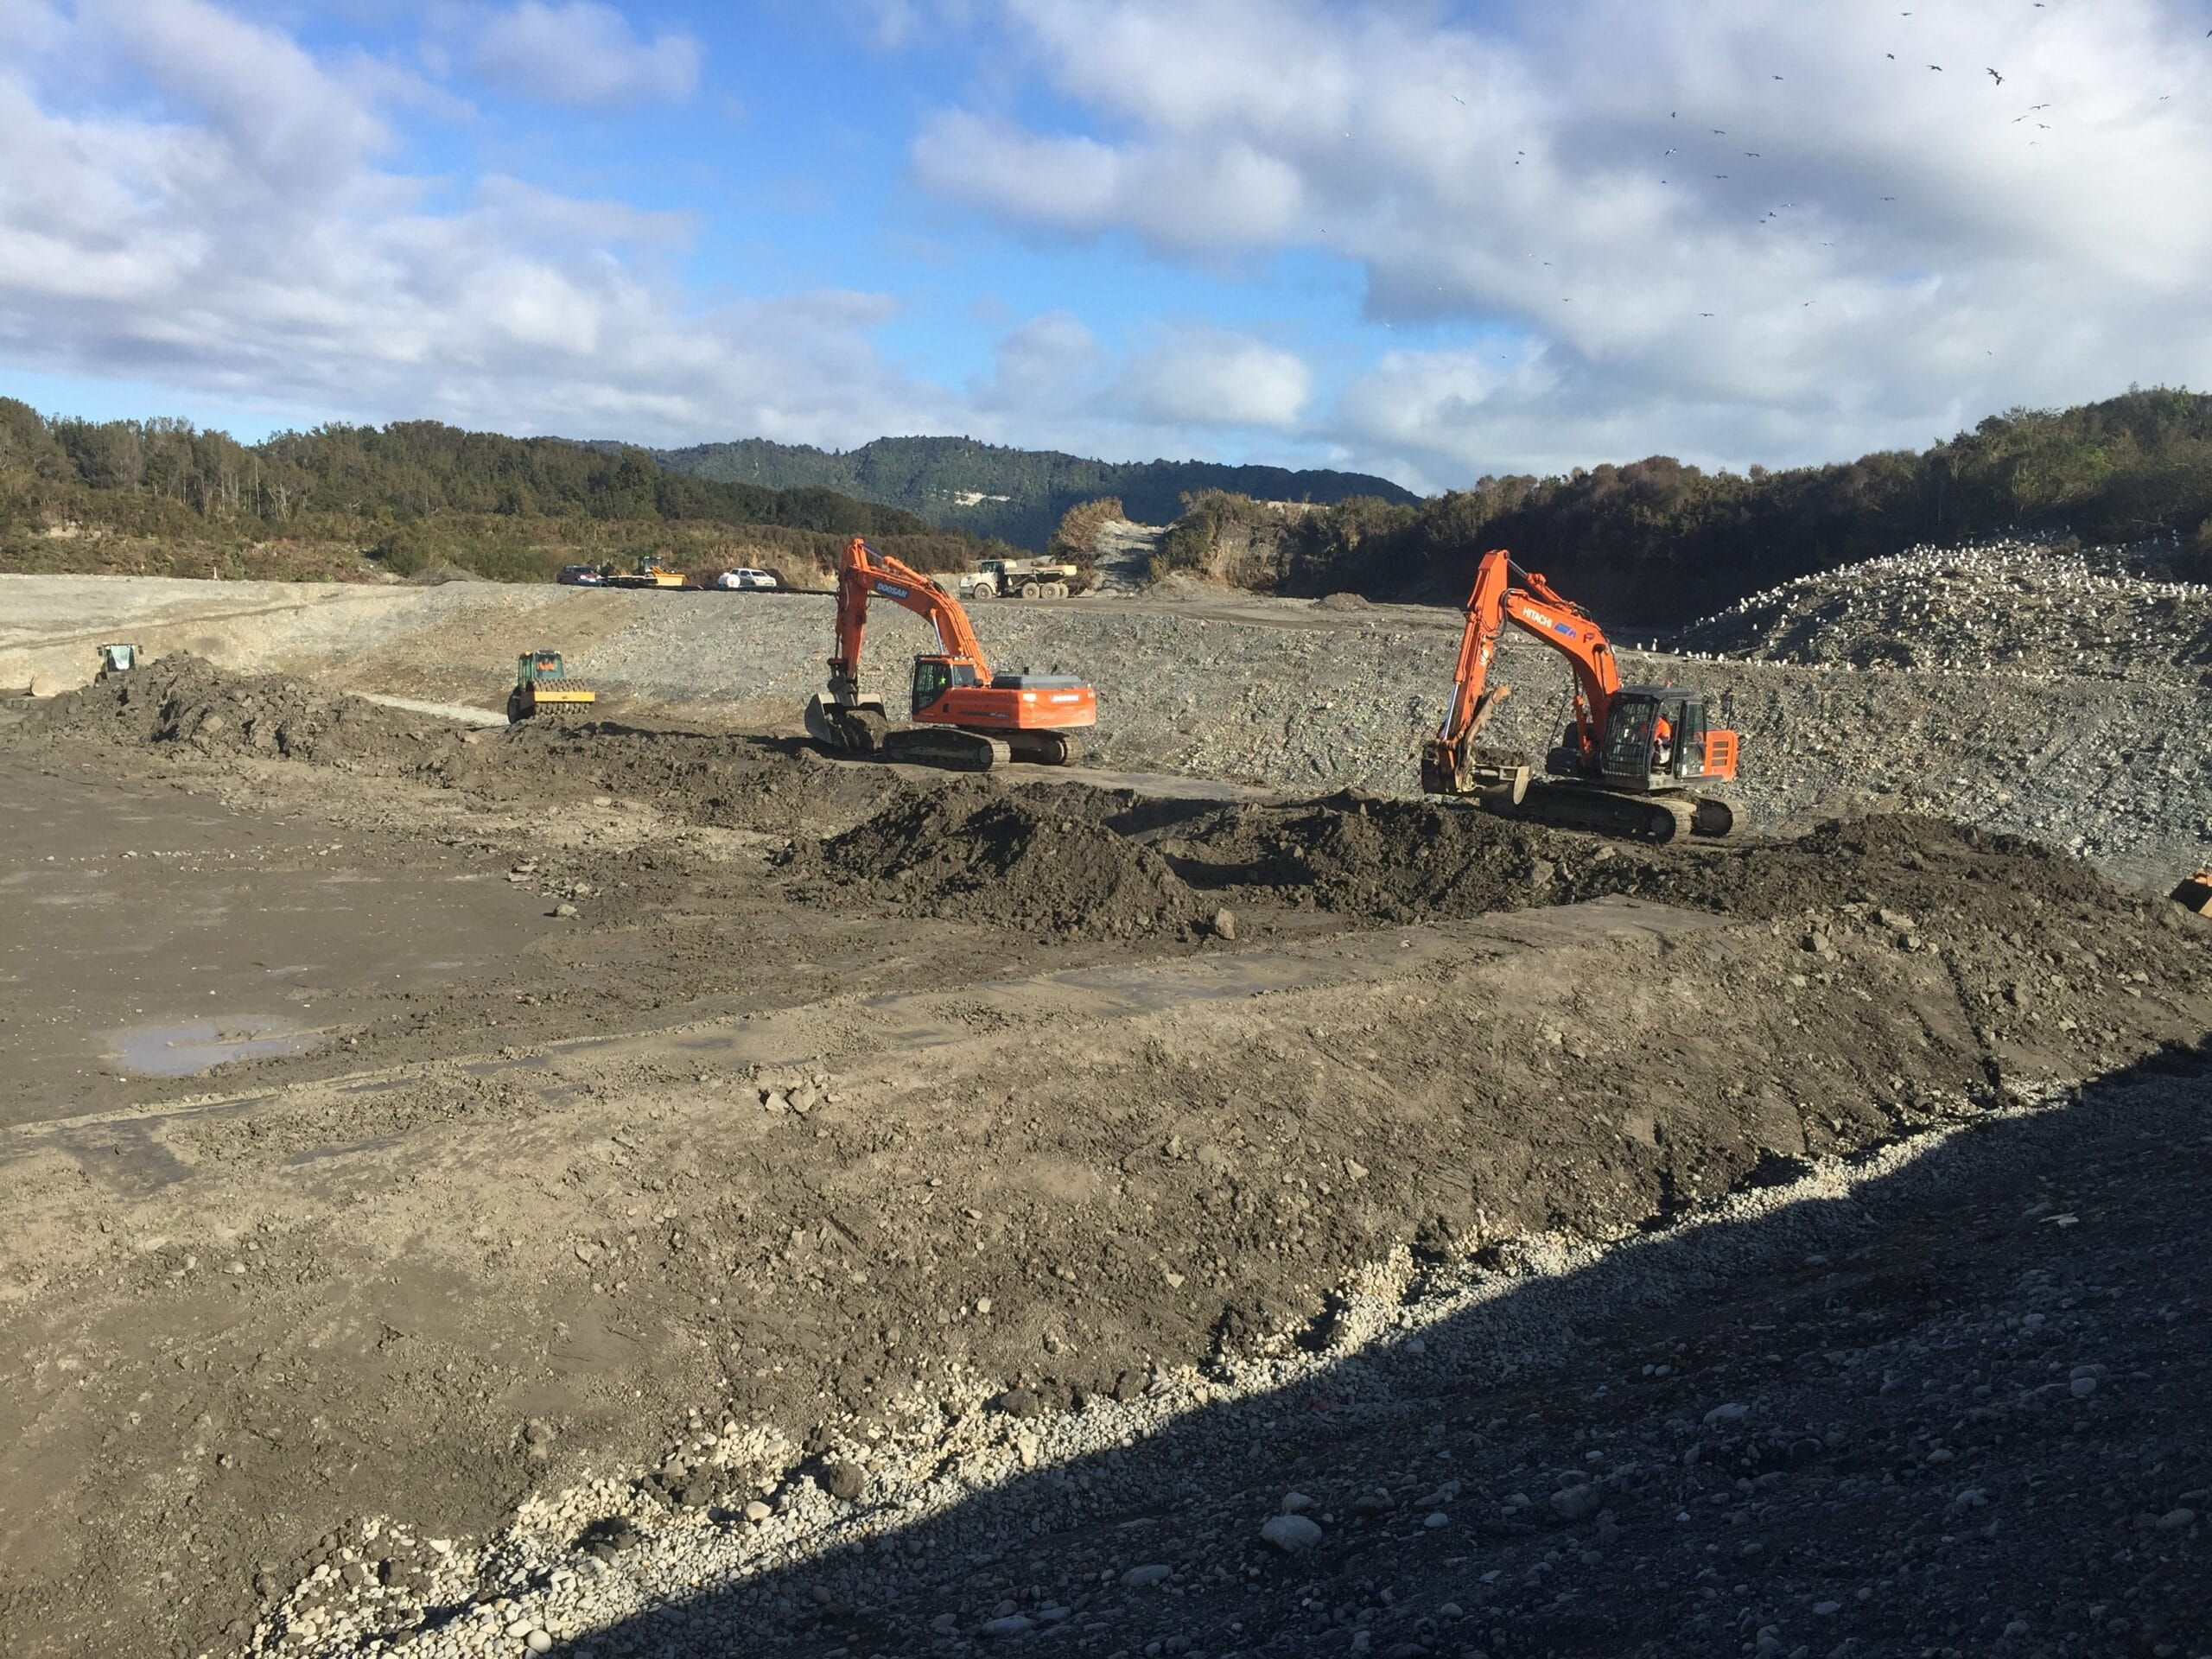 GrantHood_McLeans-Pit-Landfill-3a-11